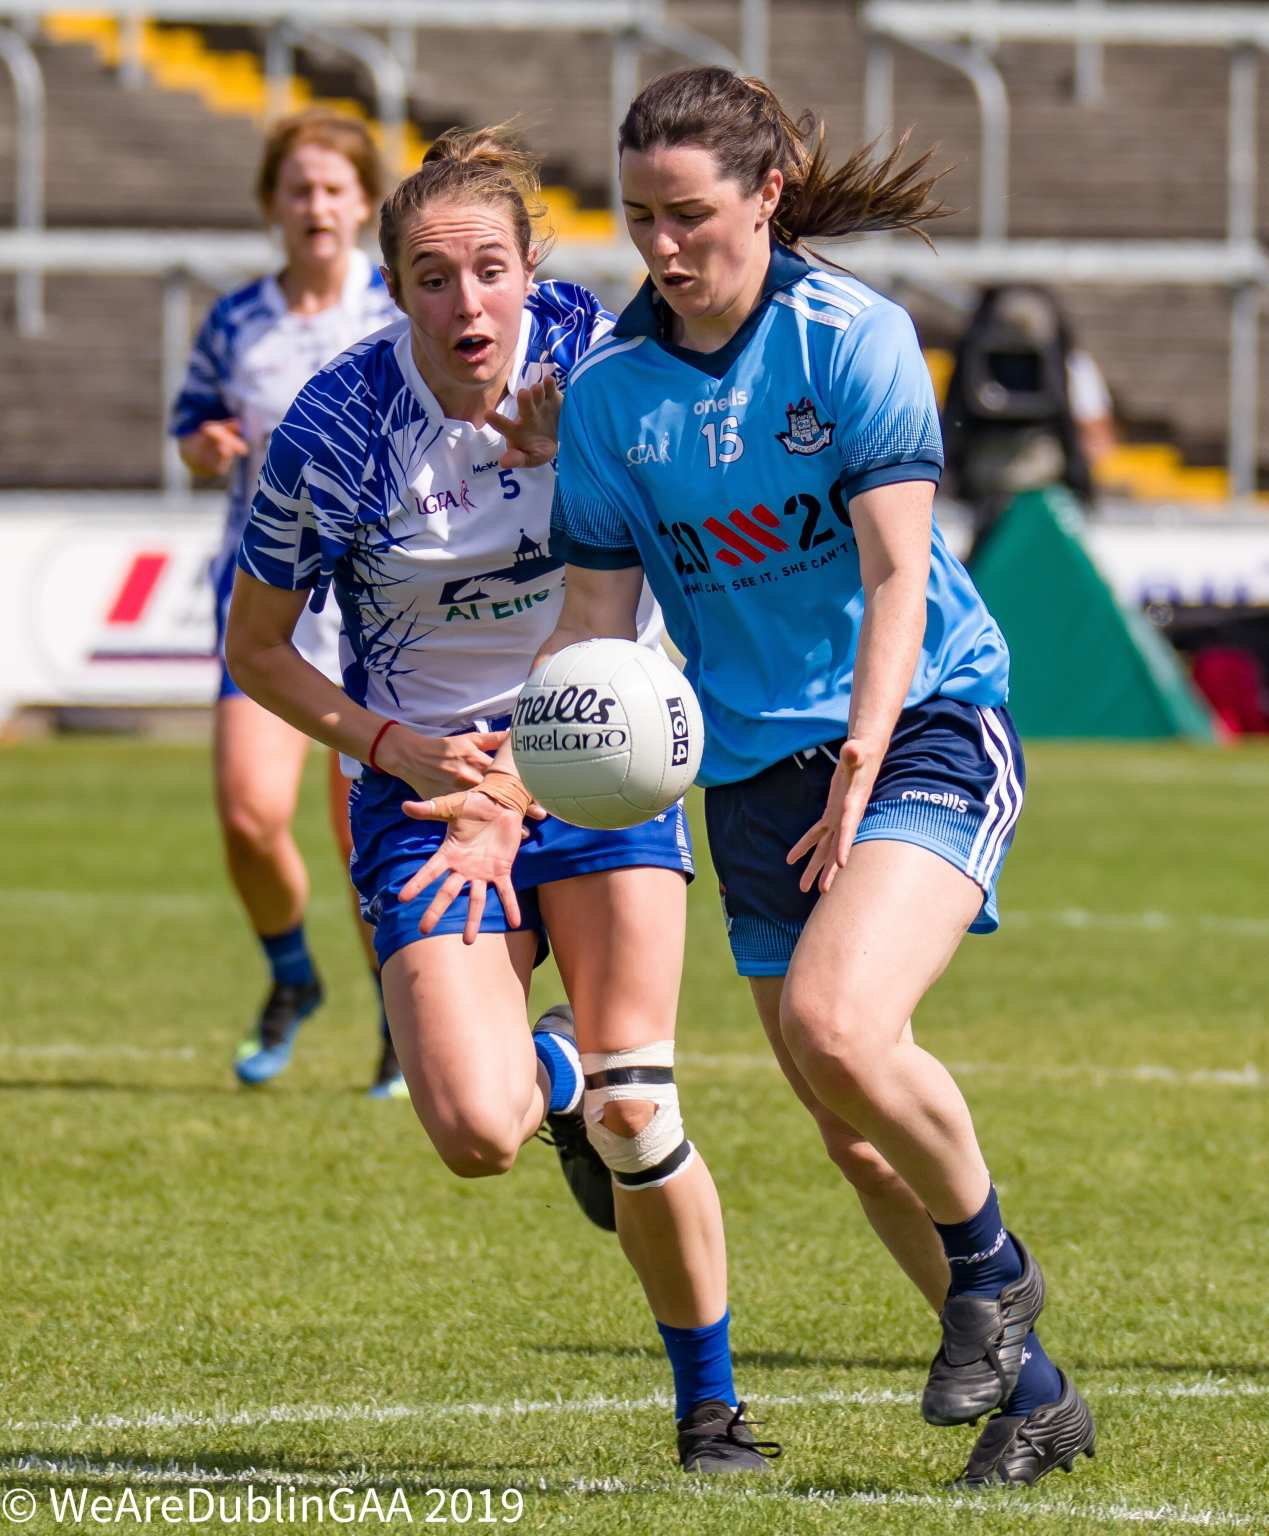 Lyndsey Davey breaks away with the ball from a Waterford player as Defending Champions Dublin comfortably Beat Waterford in the All Ireland Championship